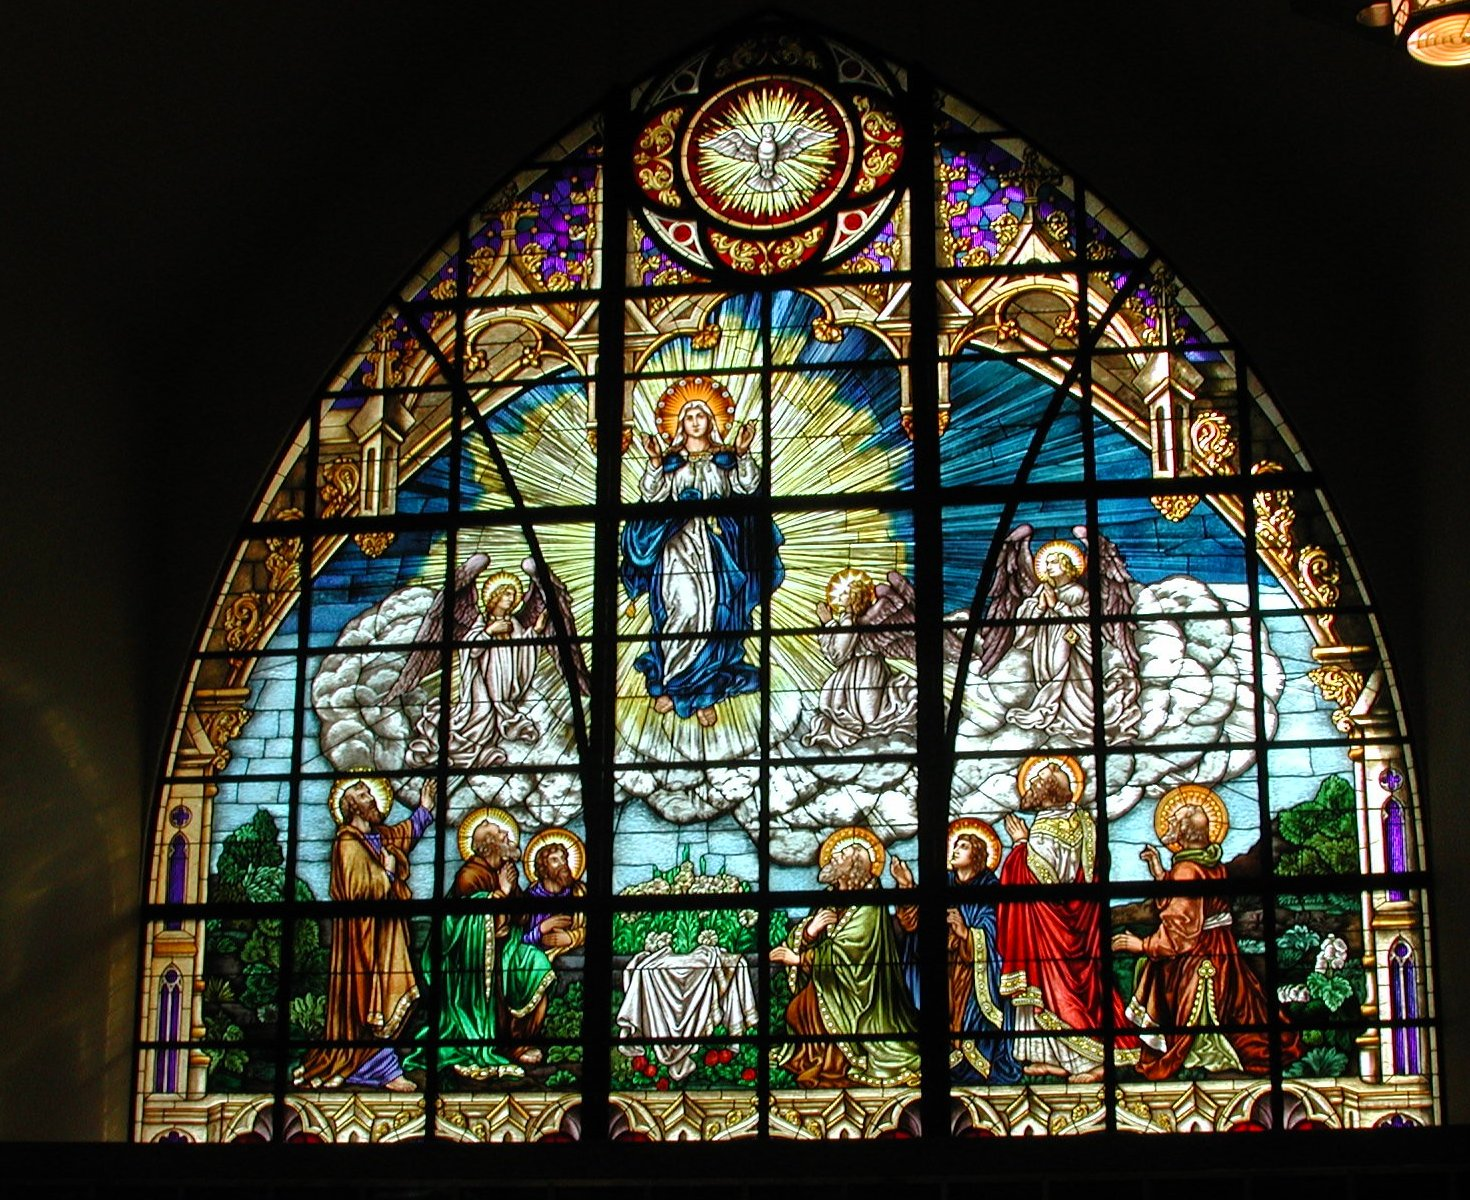 One of Heritage's largest windows, the Assumption.